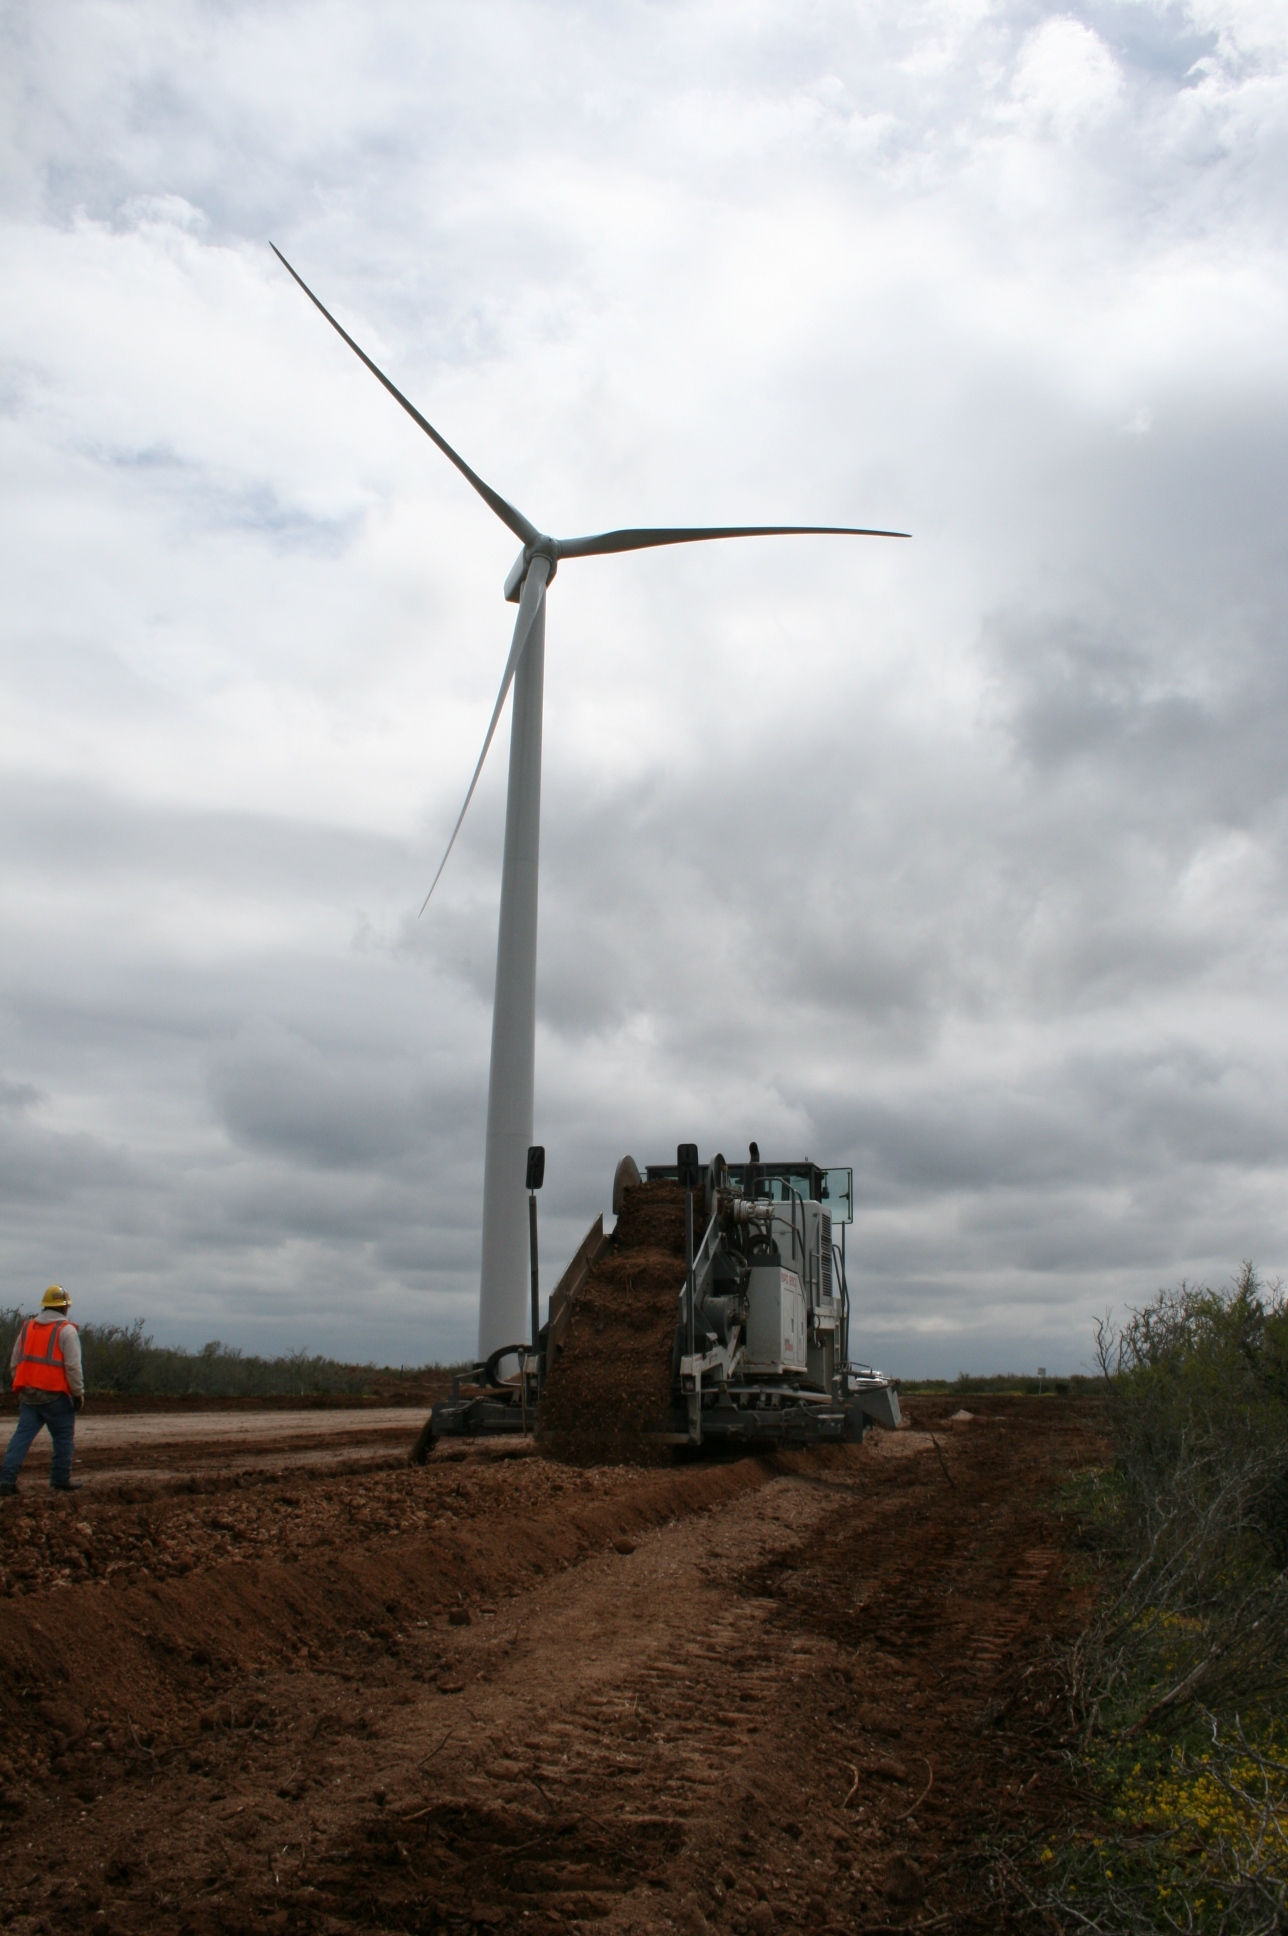 Worldwide Machinery supports clean energy